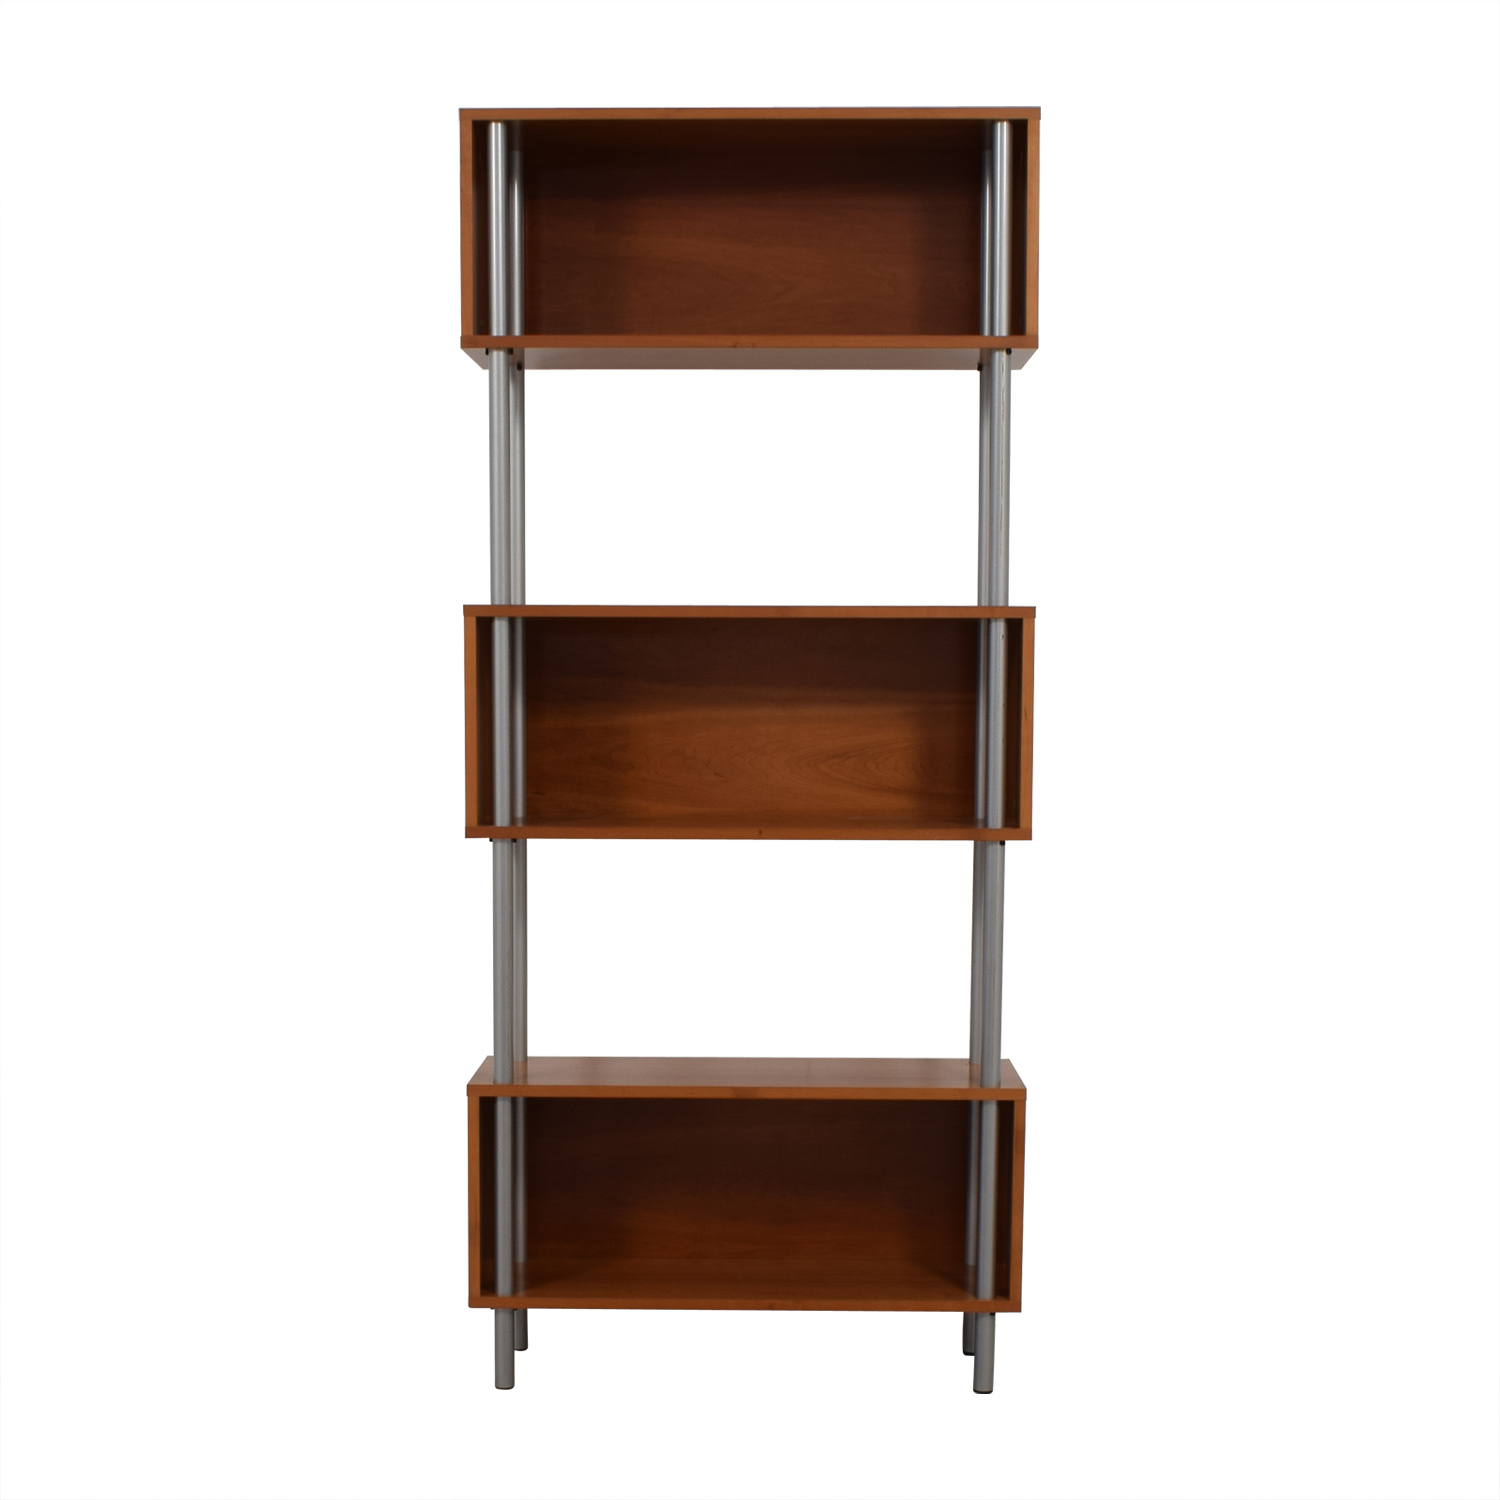 Modern Three-Tiered Bookshelf nj